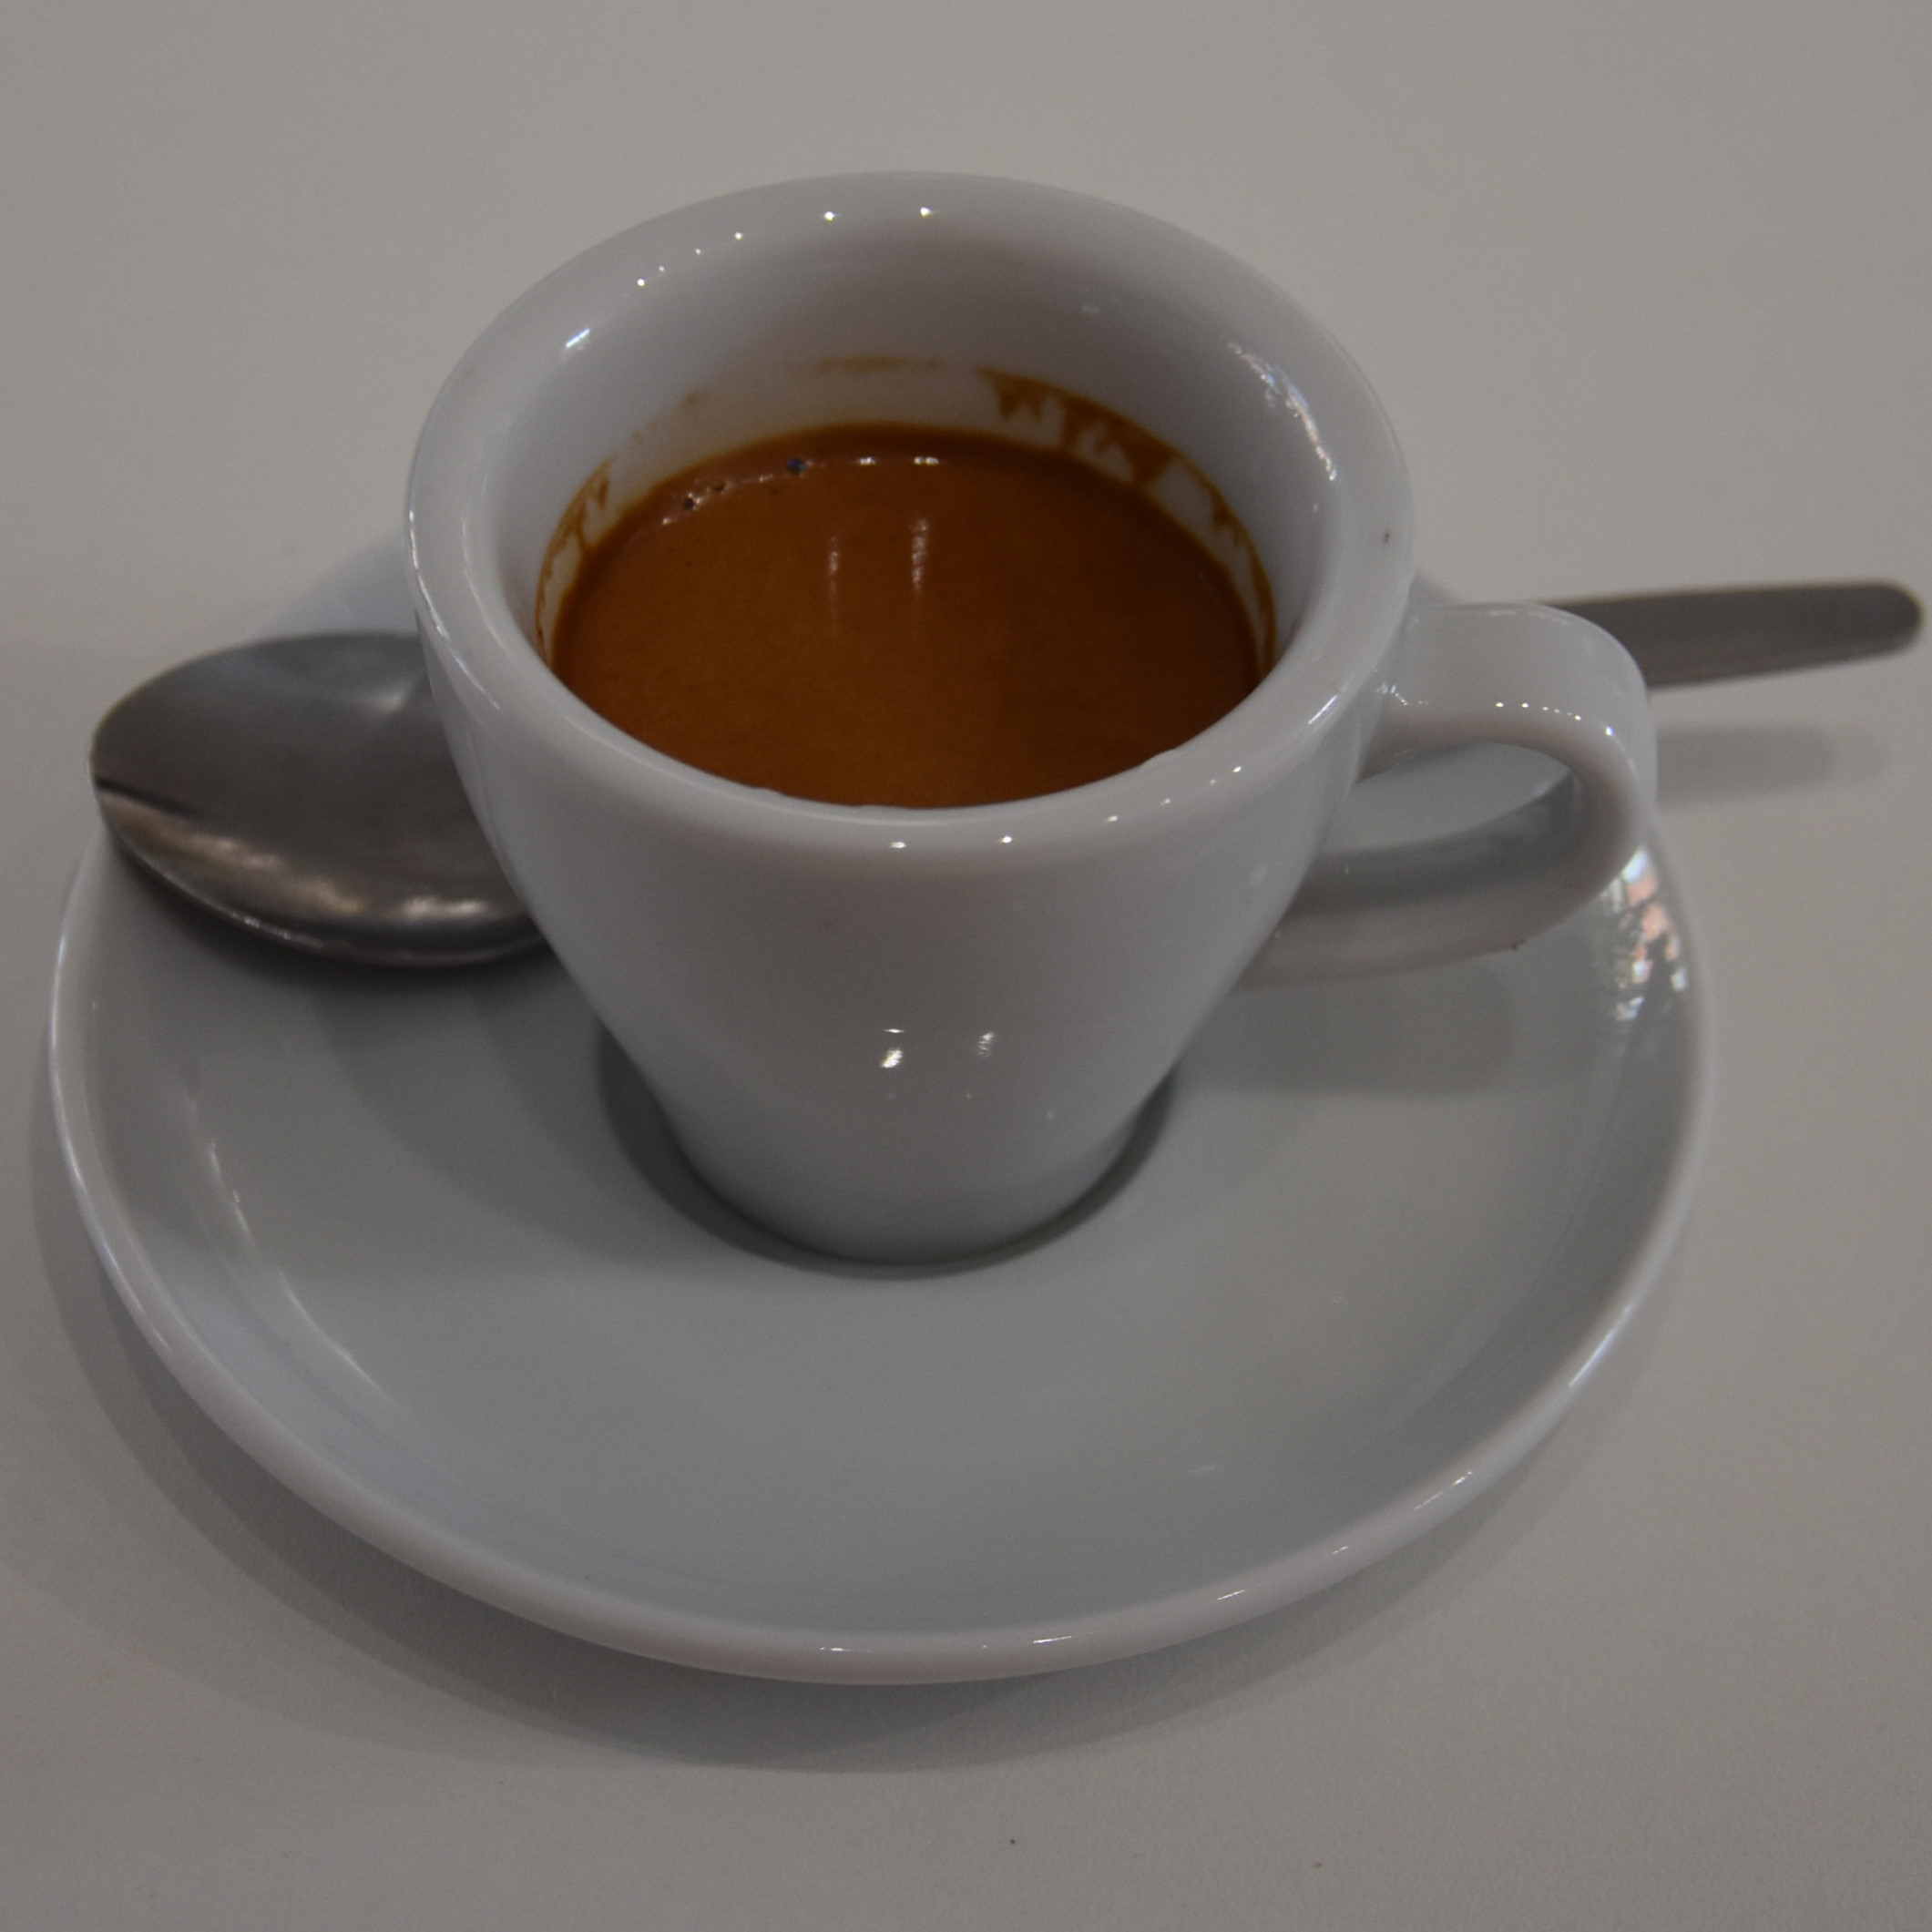 A shot of the Mayni coffee, served as an espresso in a classic white cup at Caffeina Coffi.